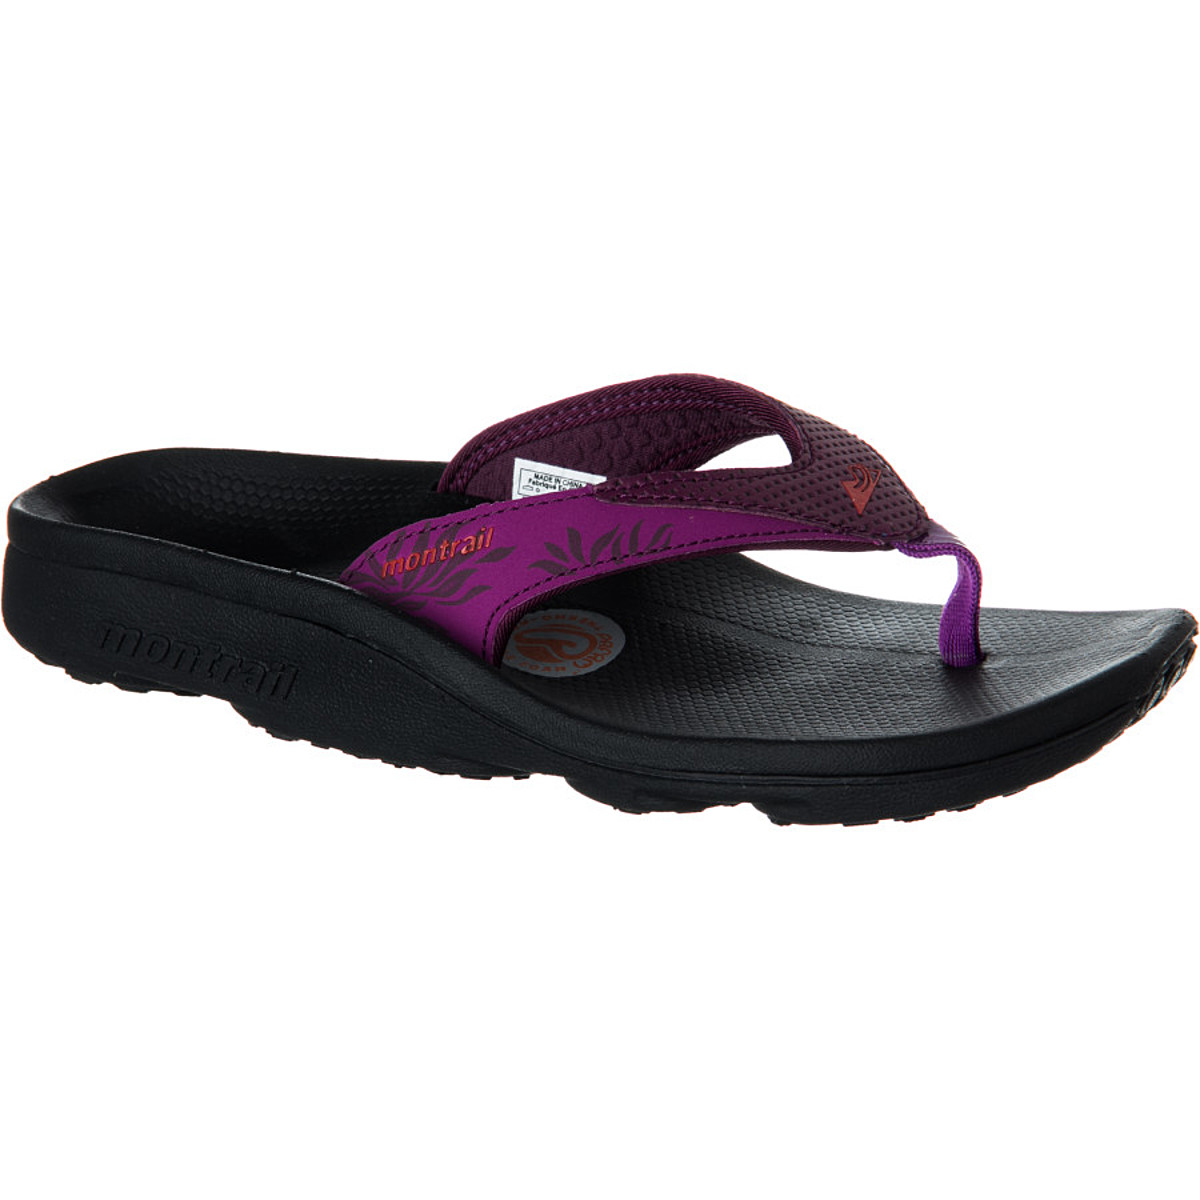 photo: Montrail Molokini flip-flop